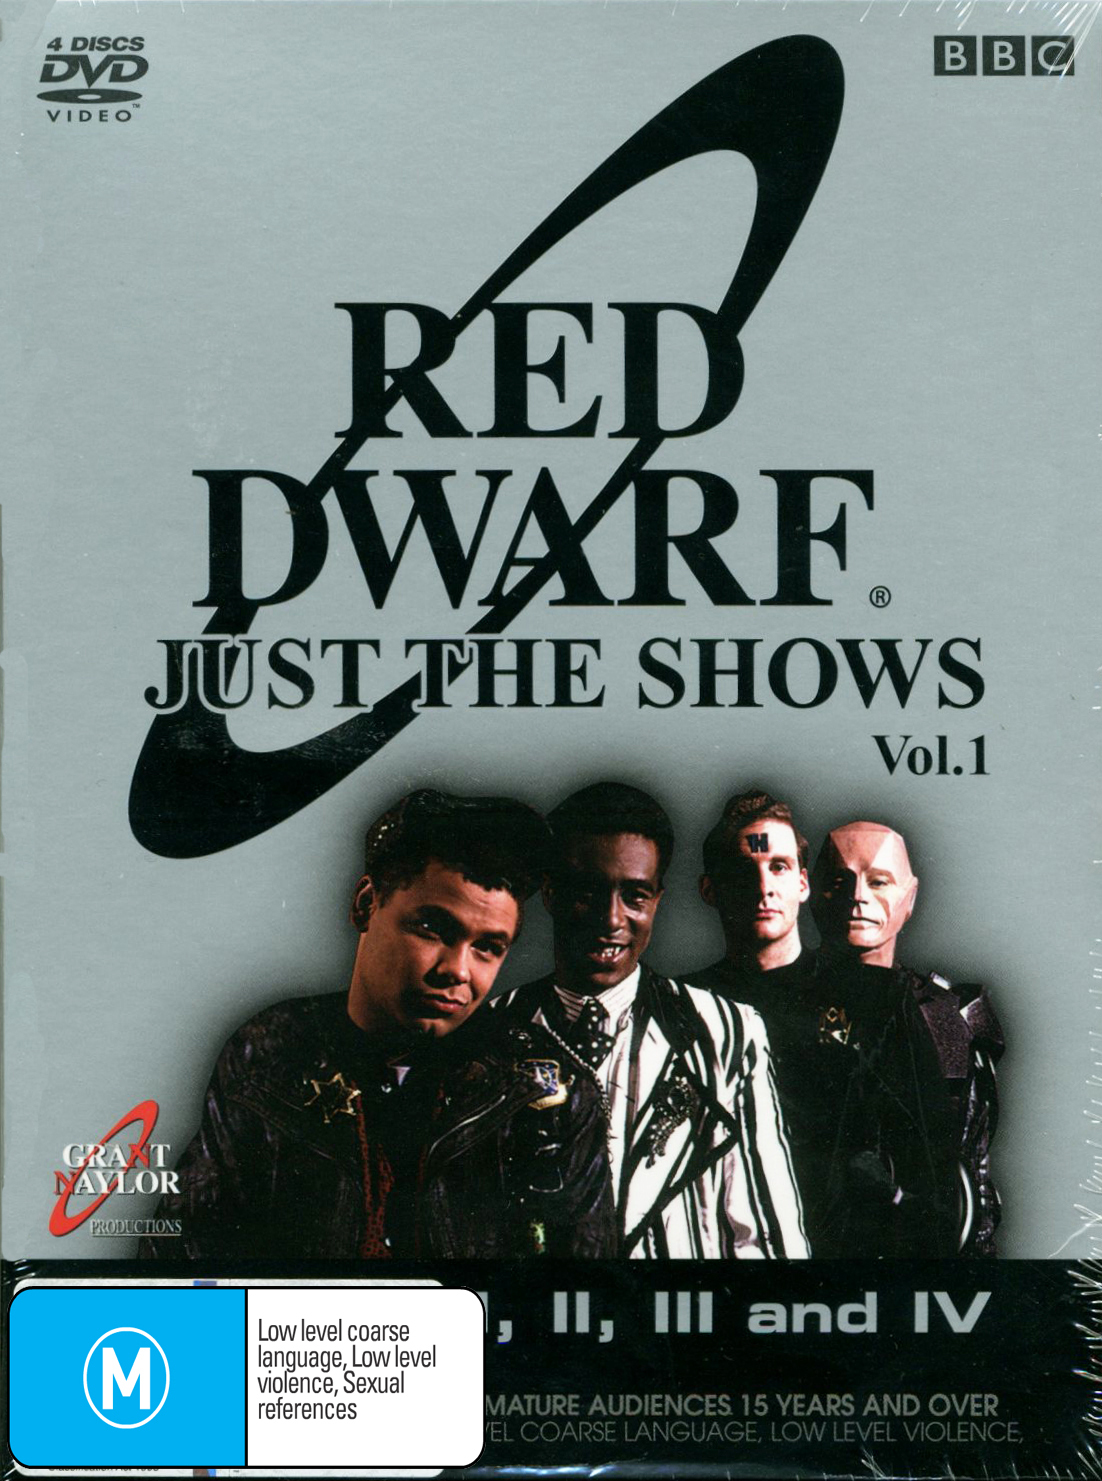 Red Dwarf - Just The Shows: Vol. 1 (4 Disc Set) on DVD image